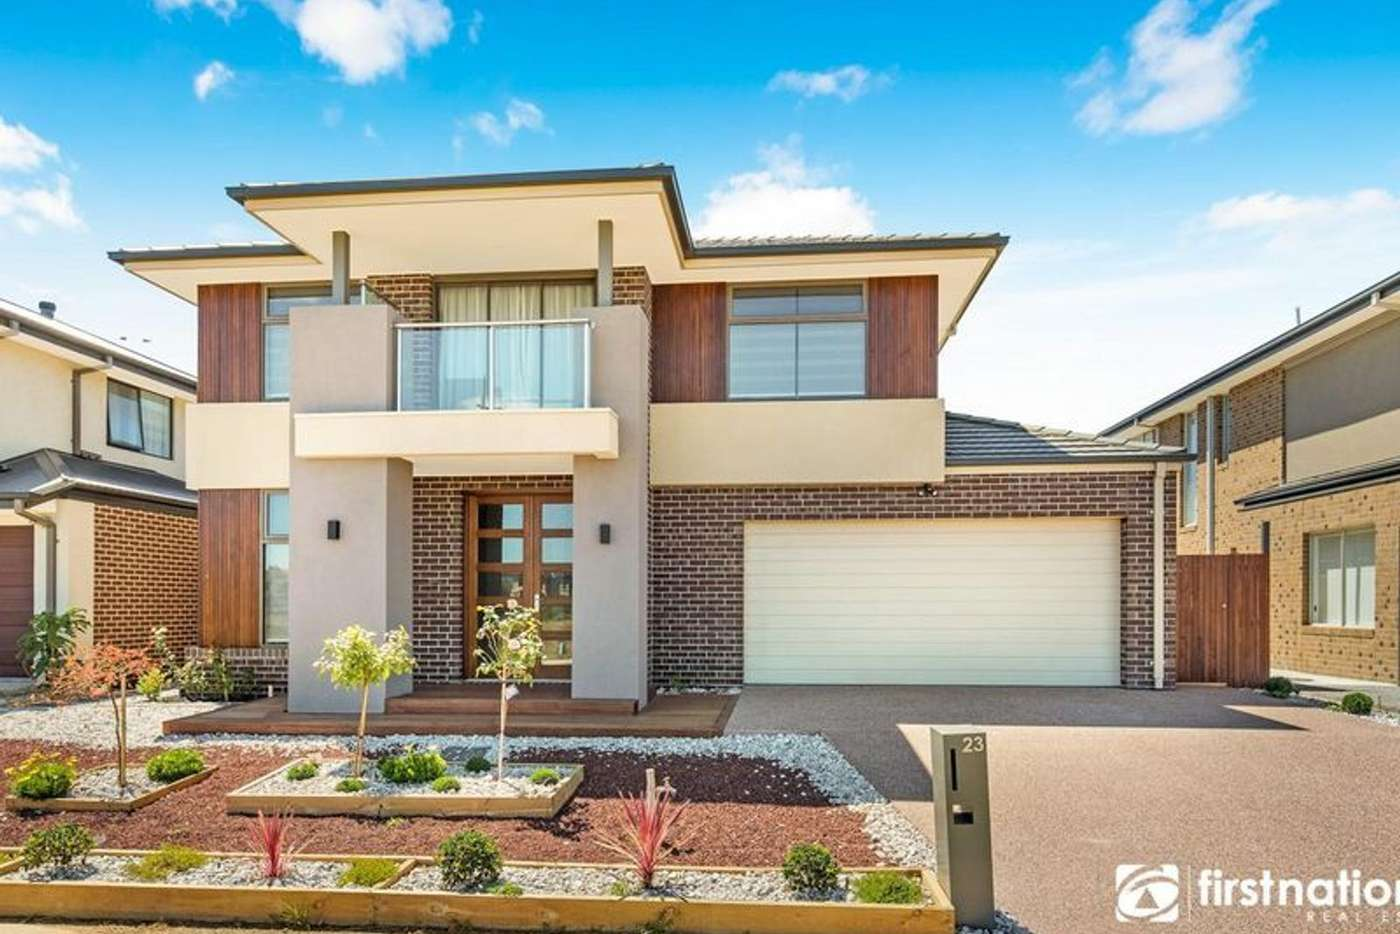 Main view of Homely house listing, 23 Viewside Way, Point Cook VIC 3030